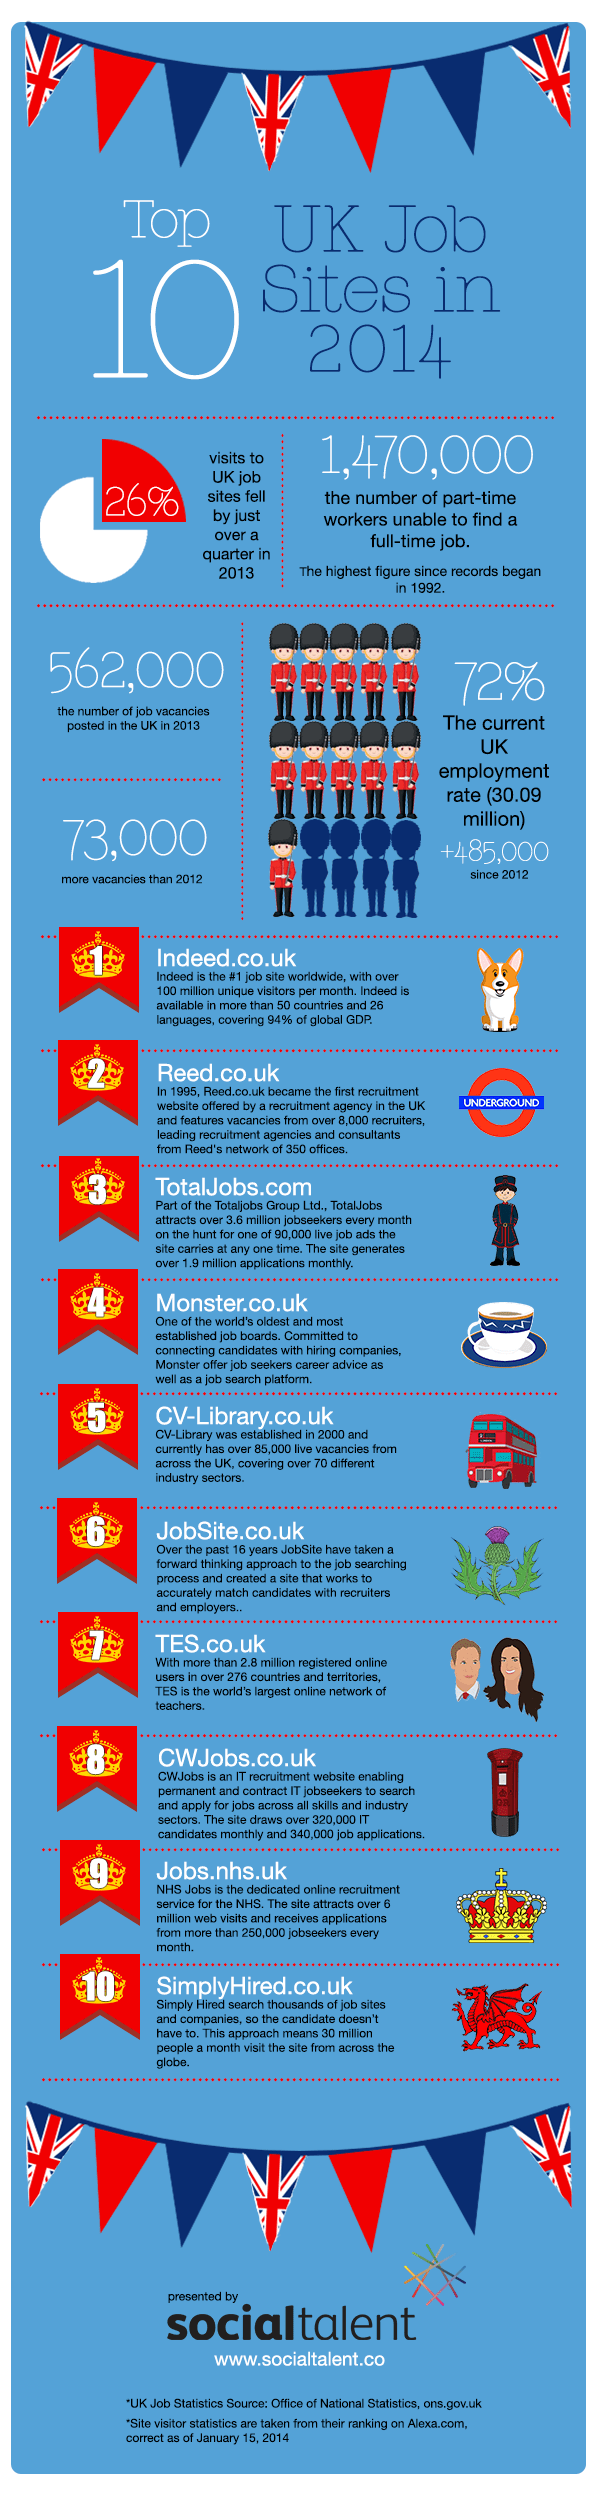 Top-10-UK-Job-Boards-(Infographic)